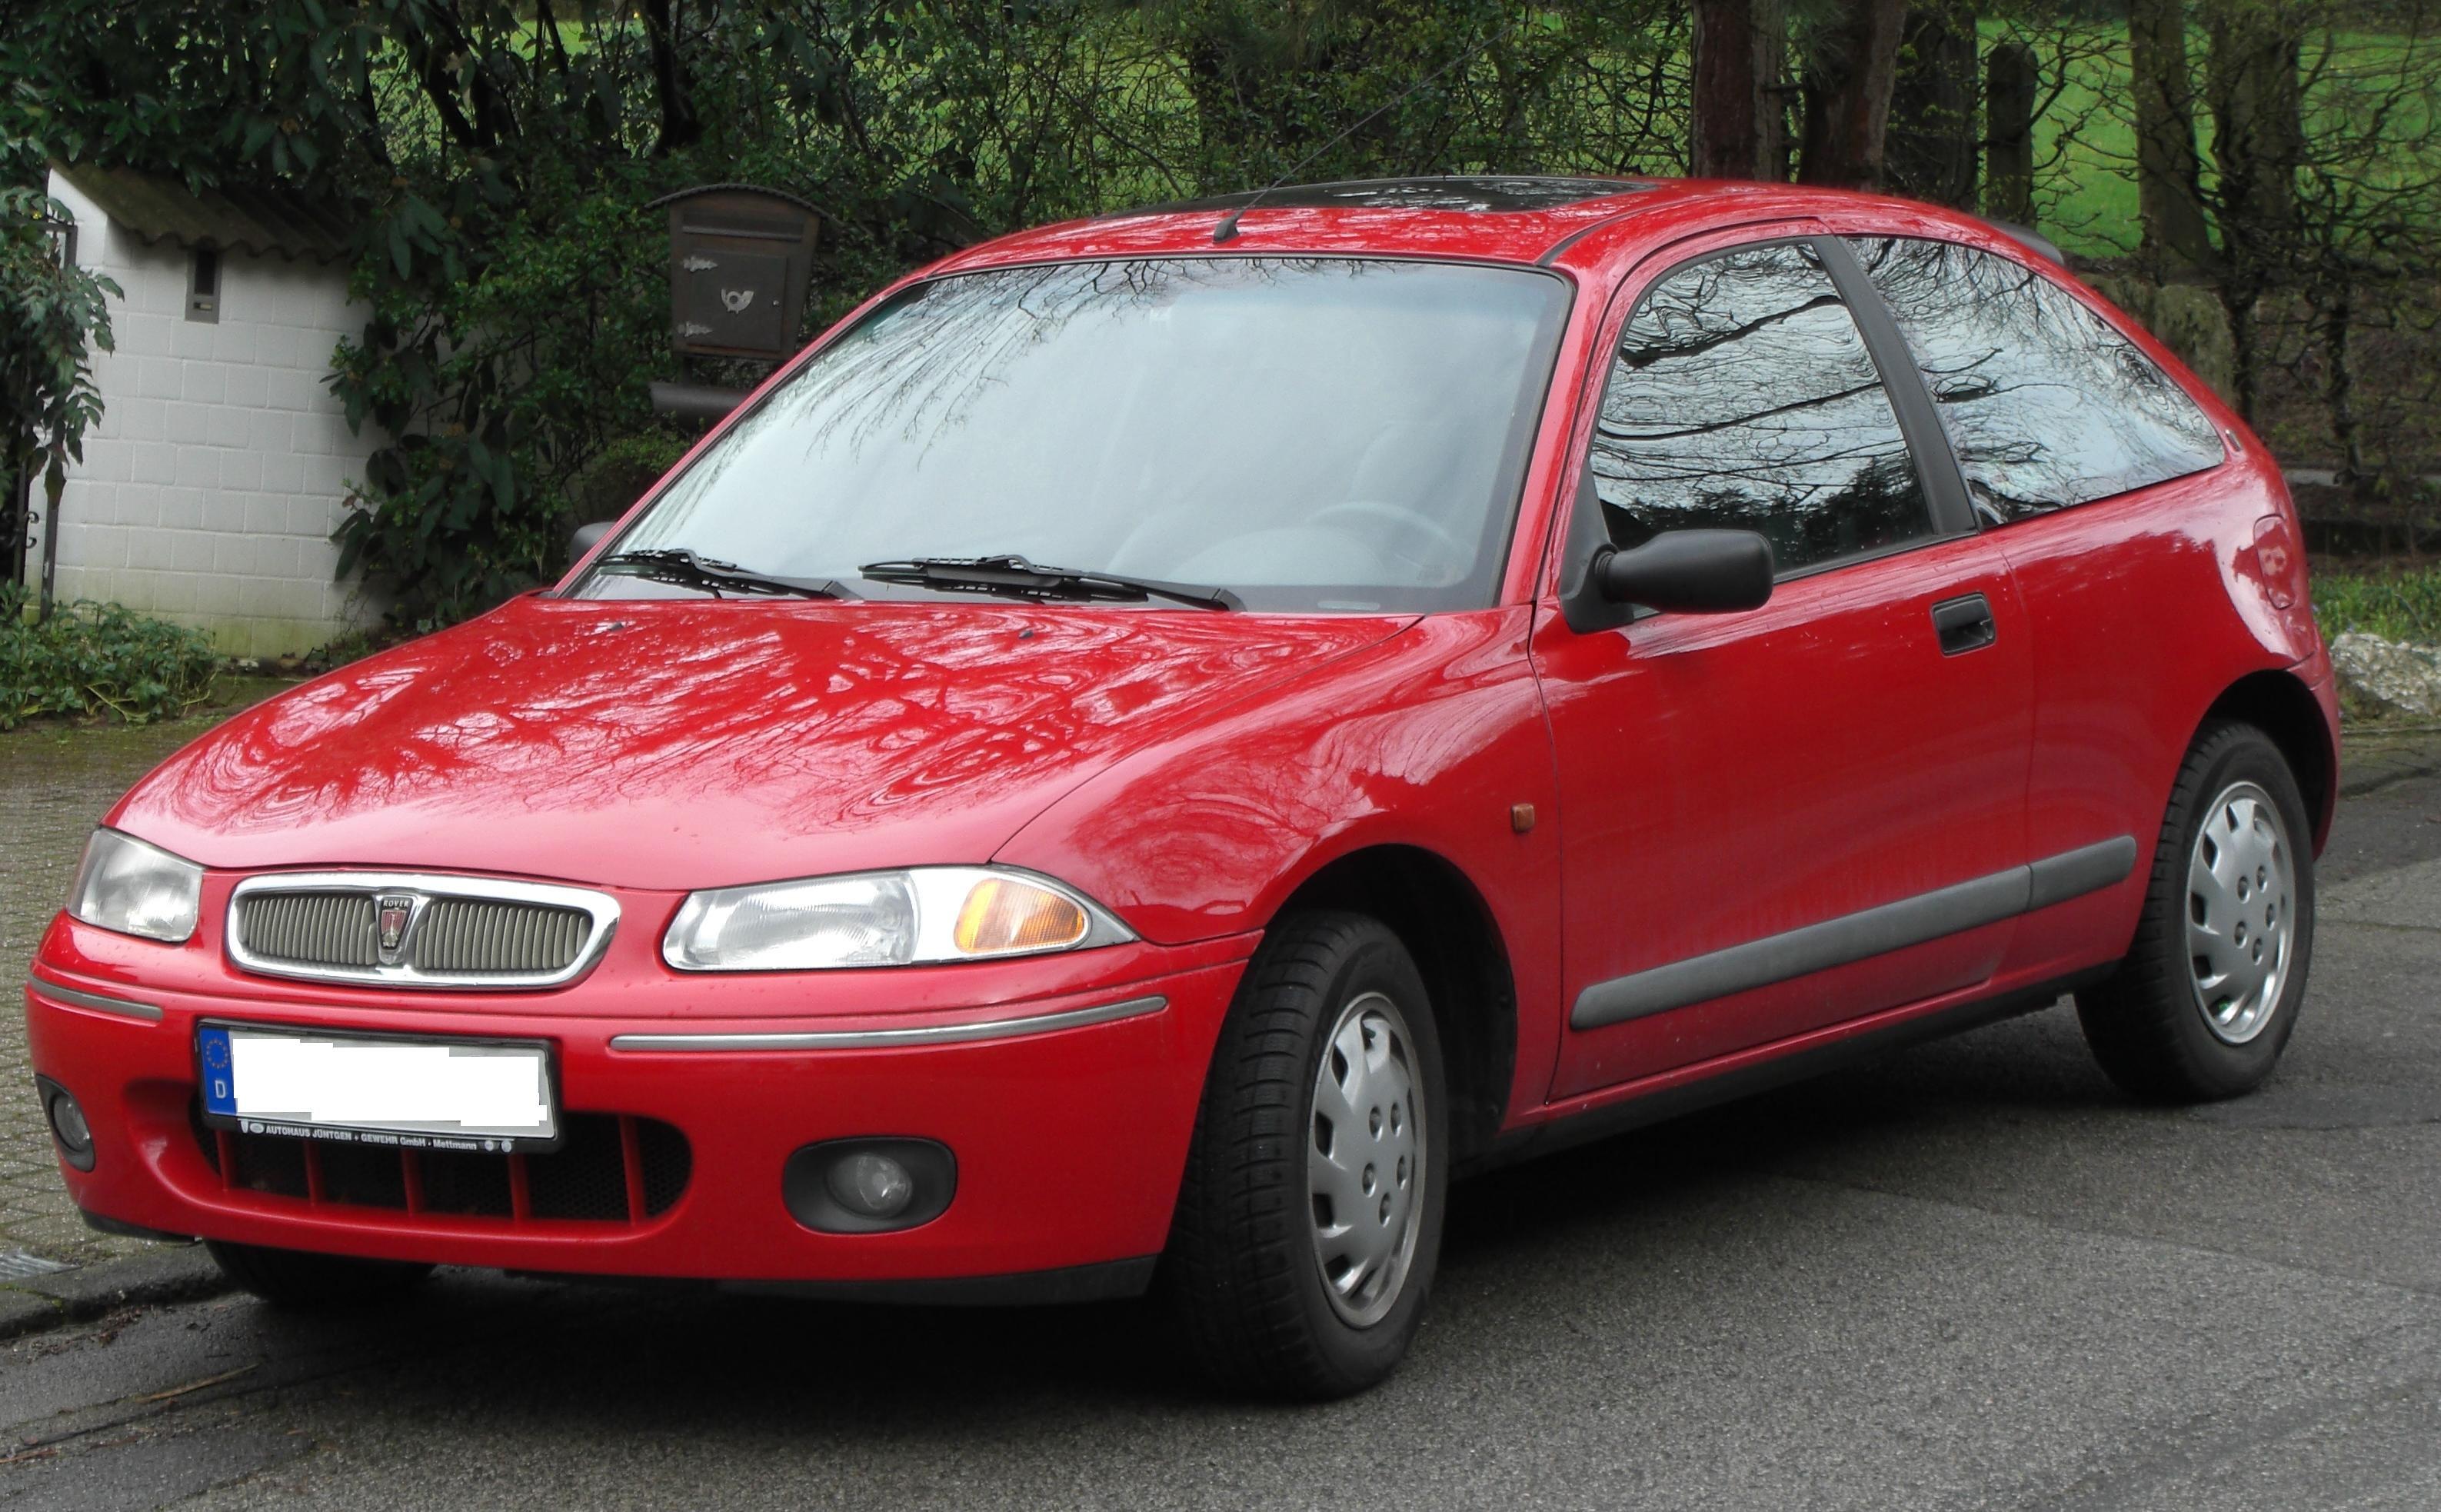 Rover 200 image #1